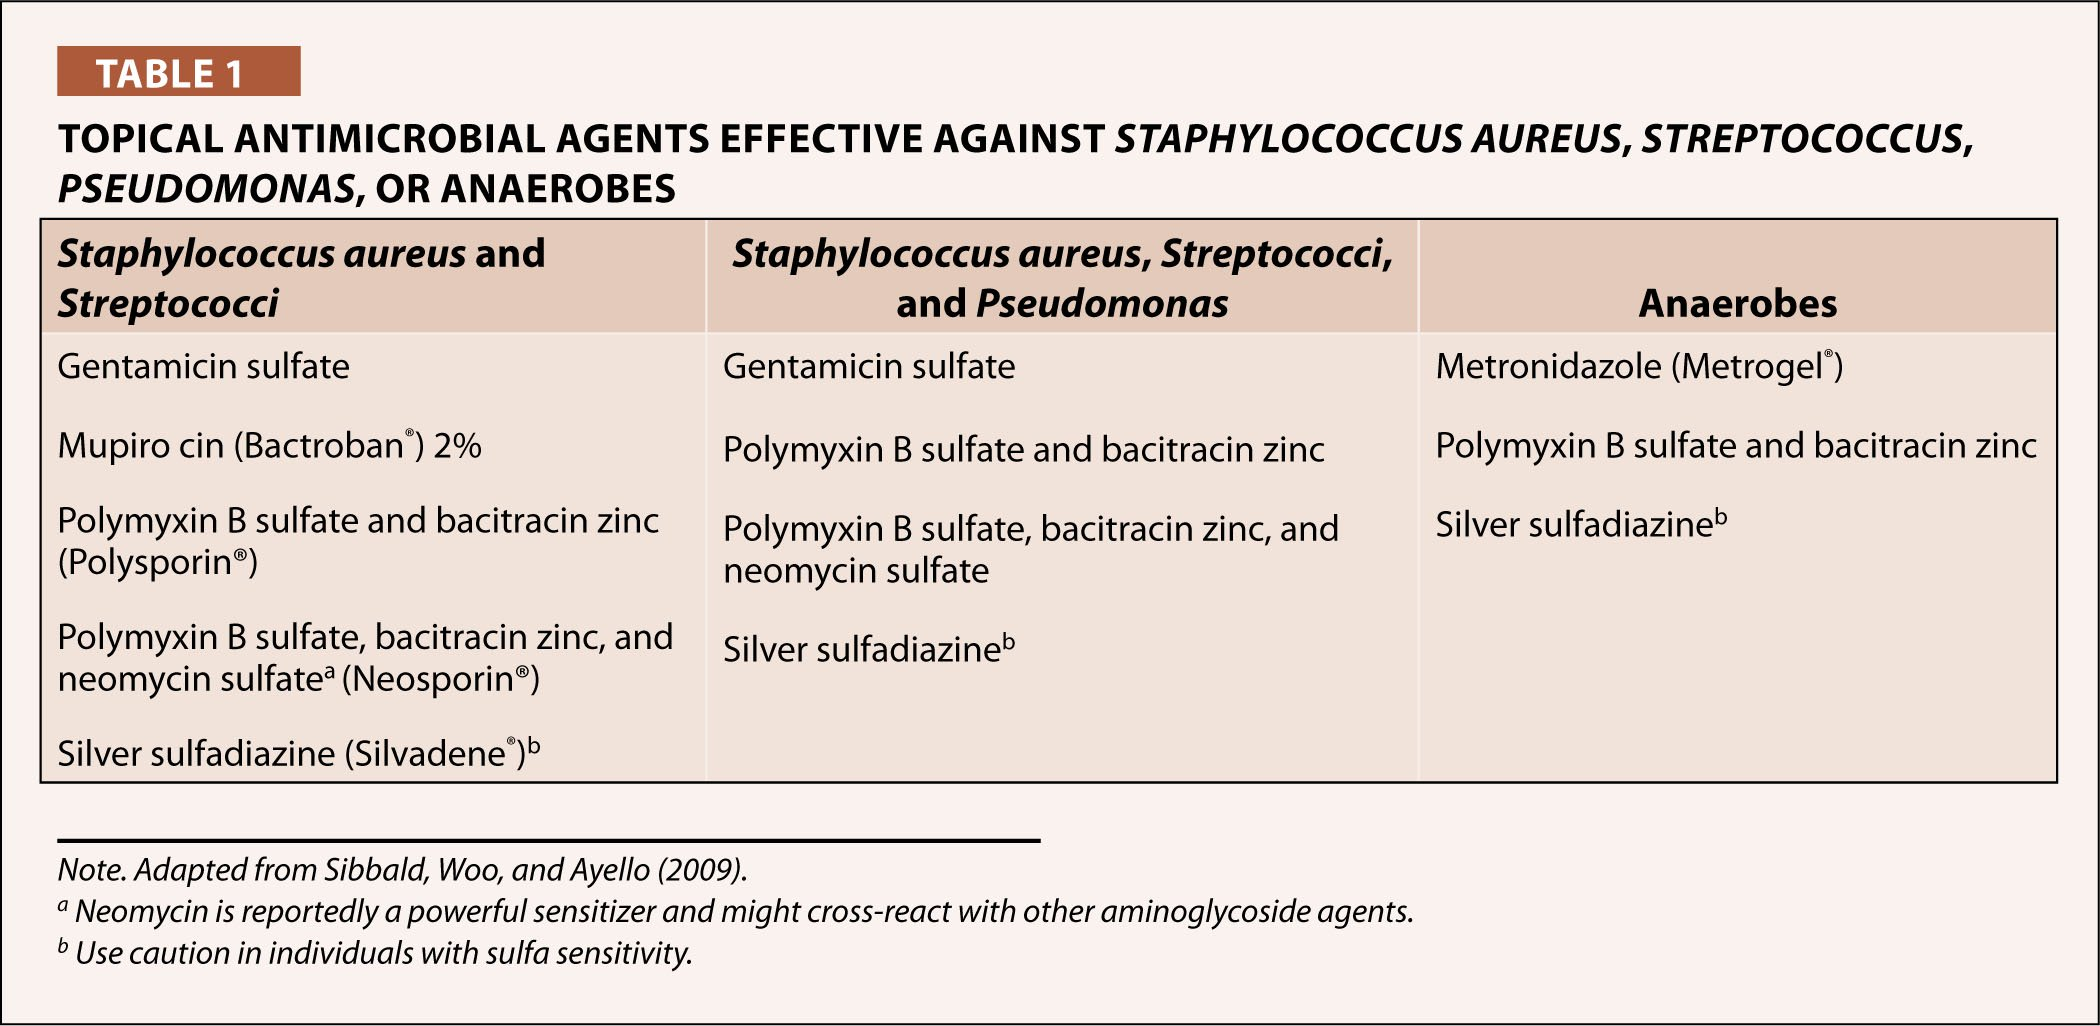 Topical Antimicrobial Agents Effective Against Staphylococcus Aureus, Streptococcus, Pseudomonas, or Anaerobes